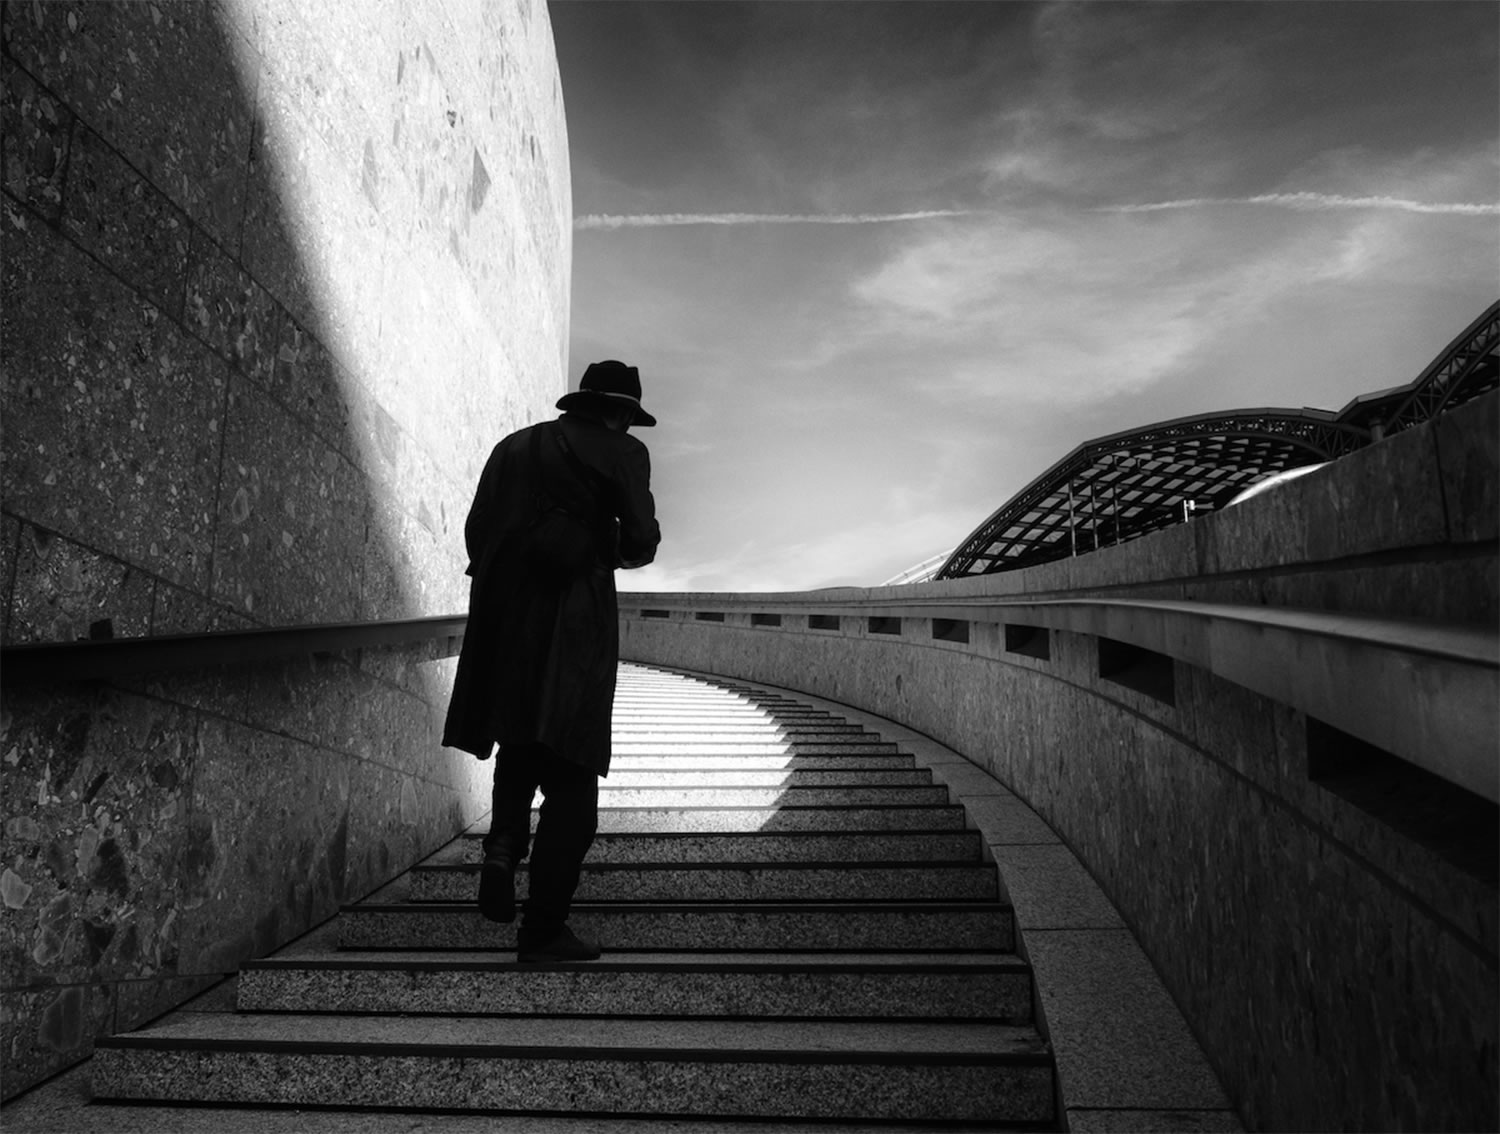 mysterious man on walking up stairs, black and white, by Georgie Pauwels